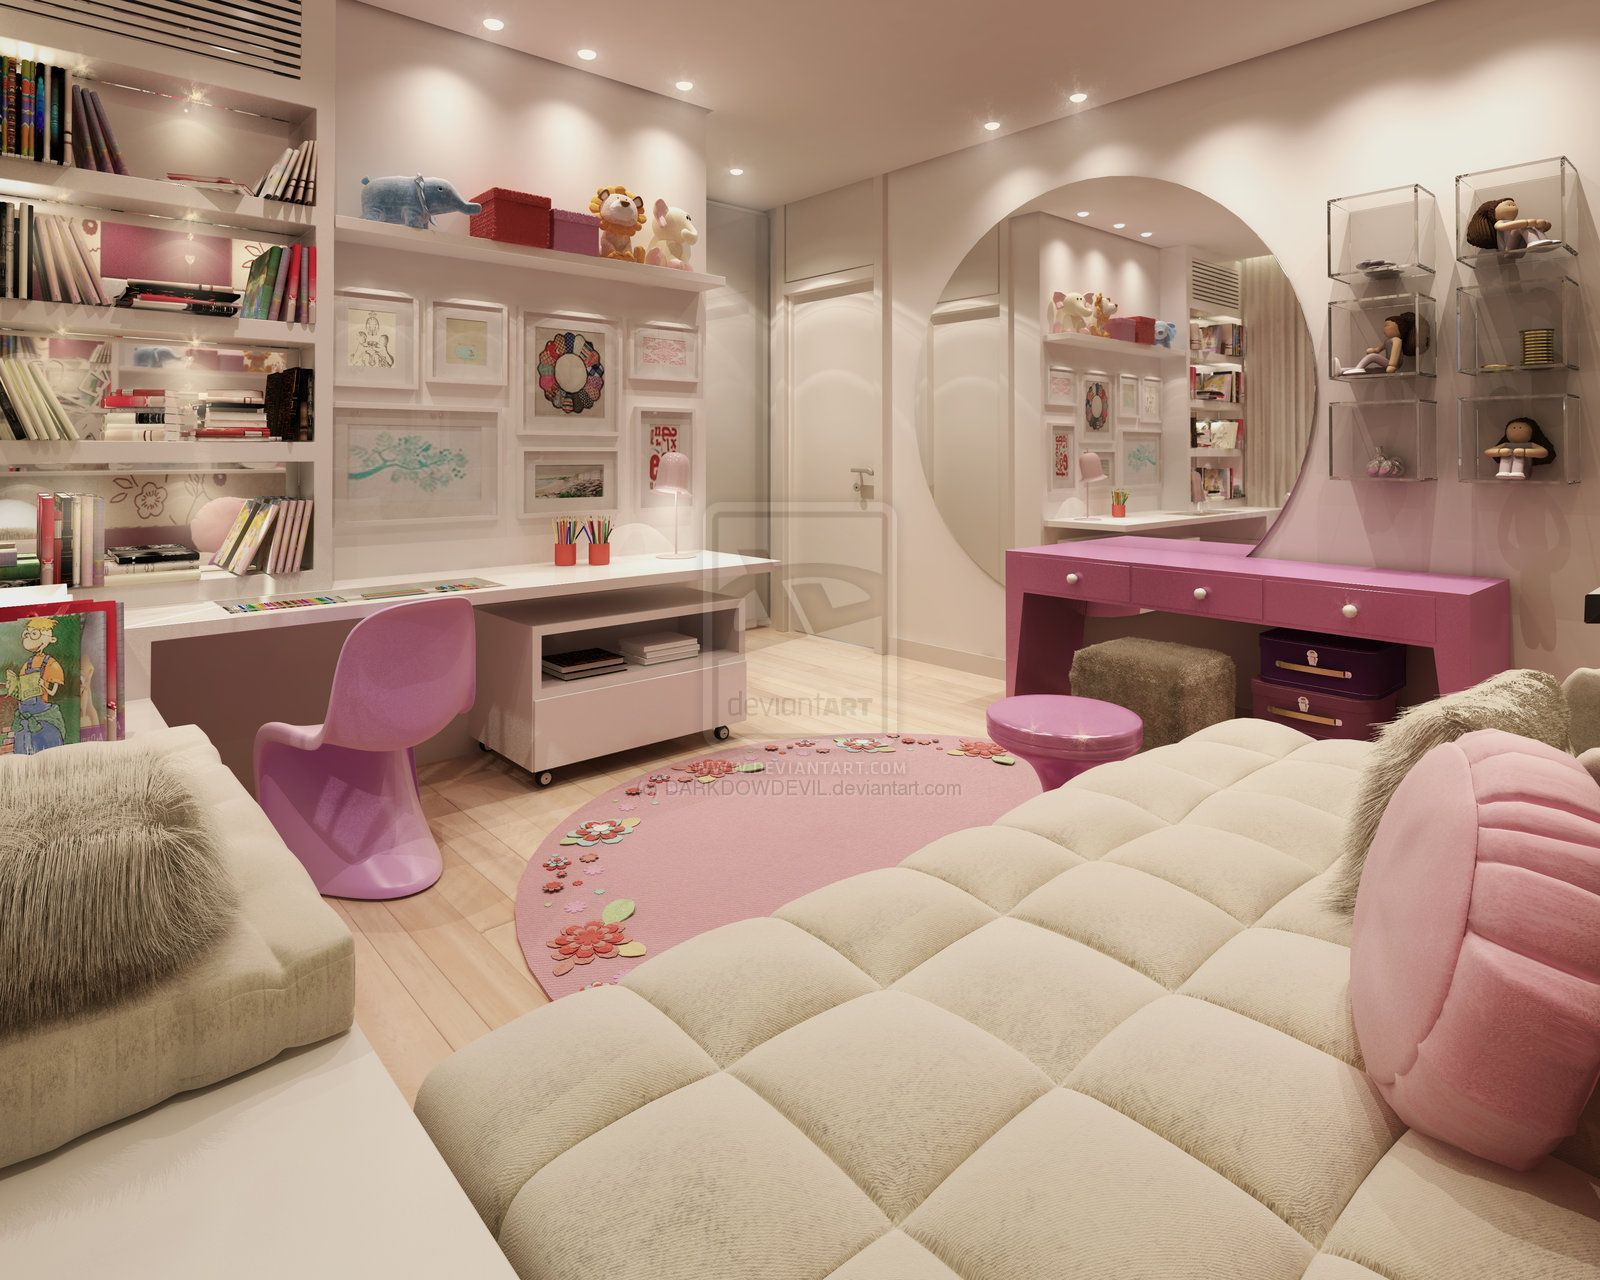 30 dream interior design ideas for teenage girls rooms - Girl Bedroom Designs